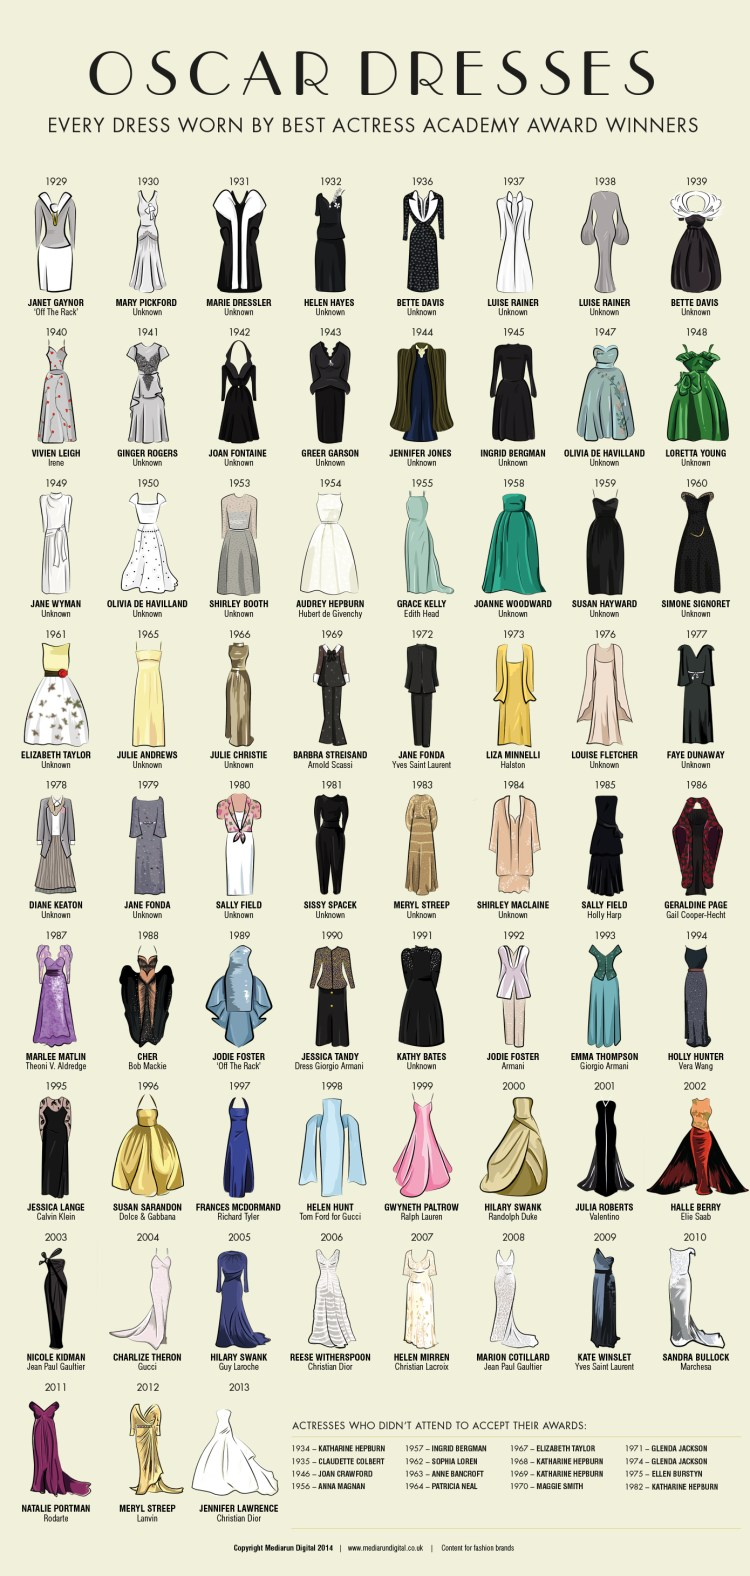 oscar-dresses--every-dress-worn-by-best-actress-academy-award-winners_530b85eabcab5